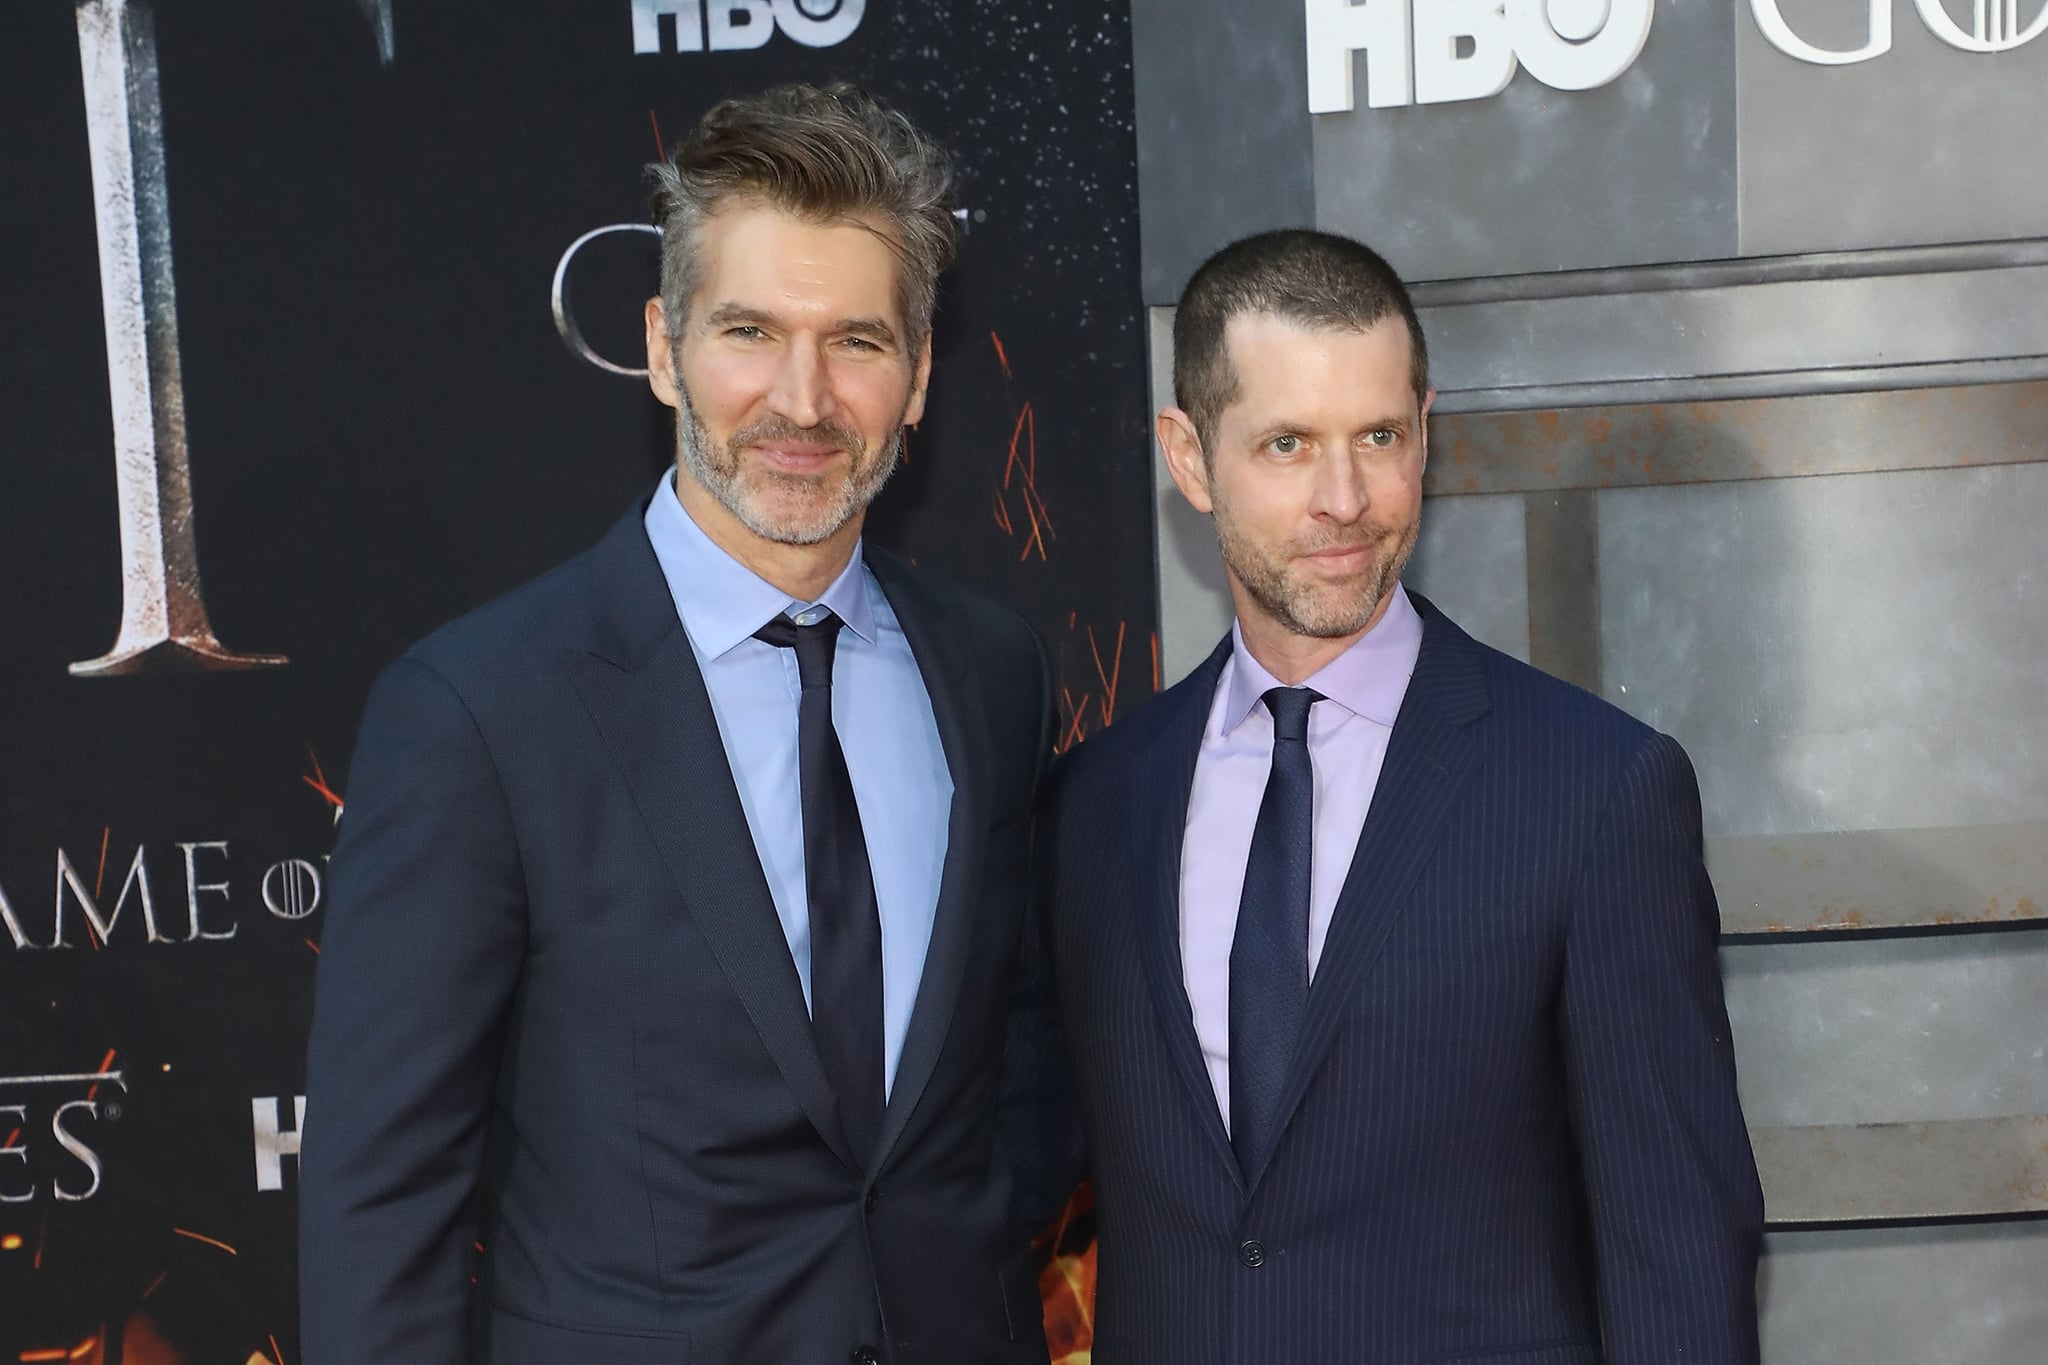 NEW YORK, NY - APRIL 03:  David Benioff and D.B. Weiss attend the Season 8 premiere of